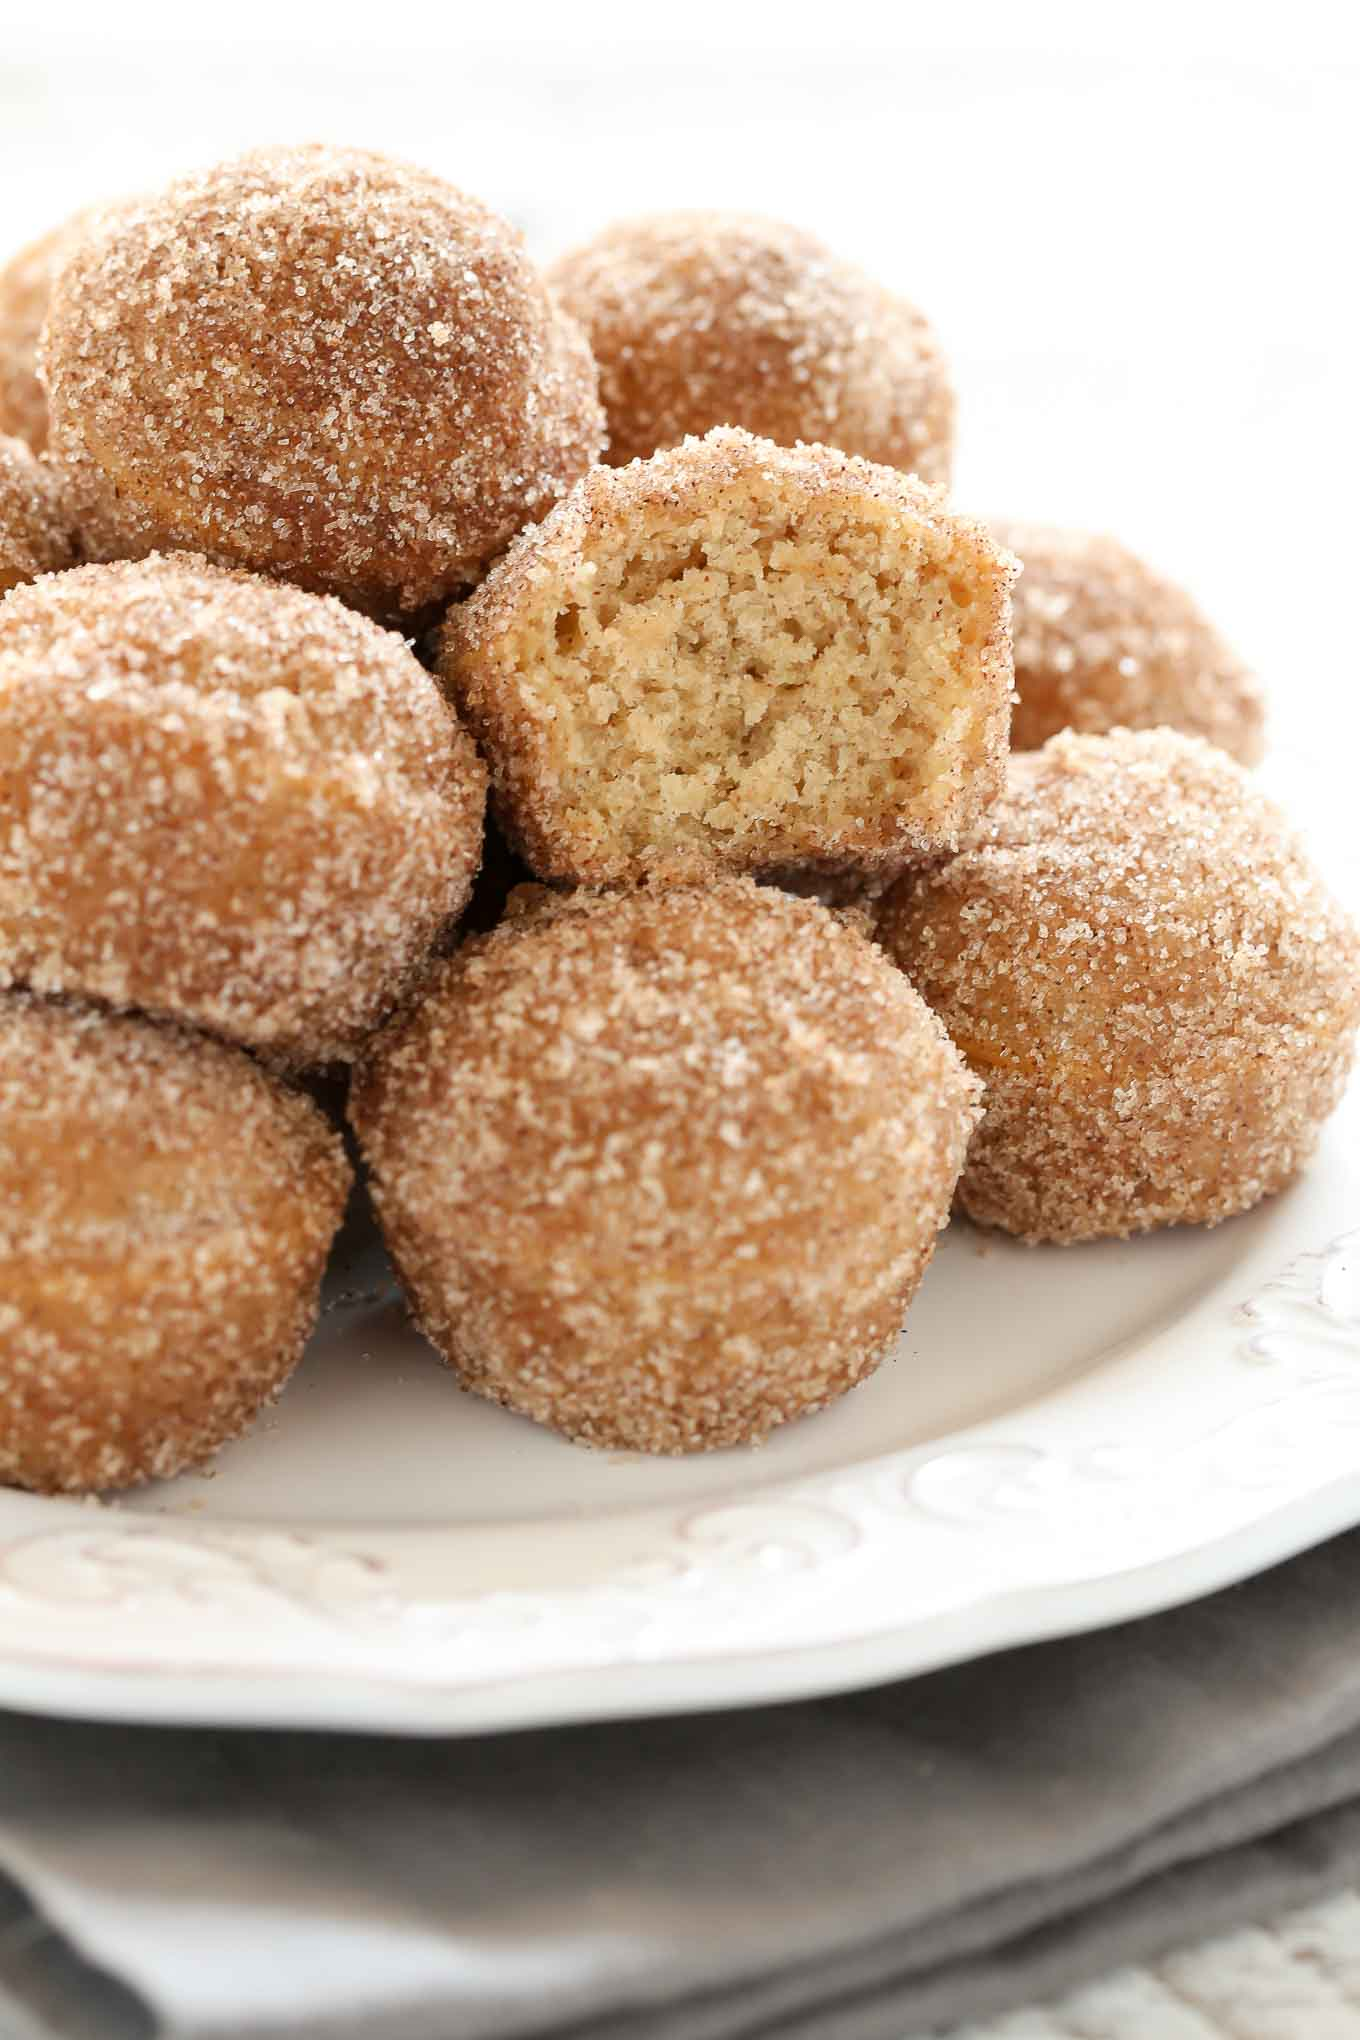 Close up shot of pile of cider donut holes on a white plate. The middle donut hole has a bite missing.